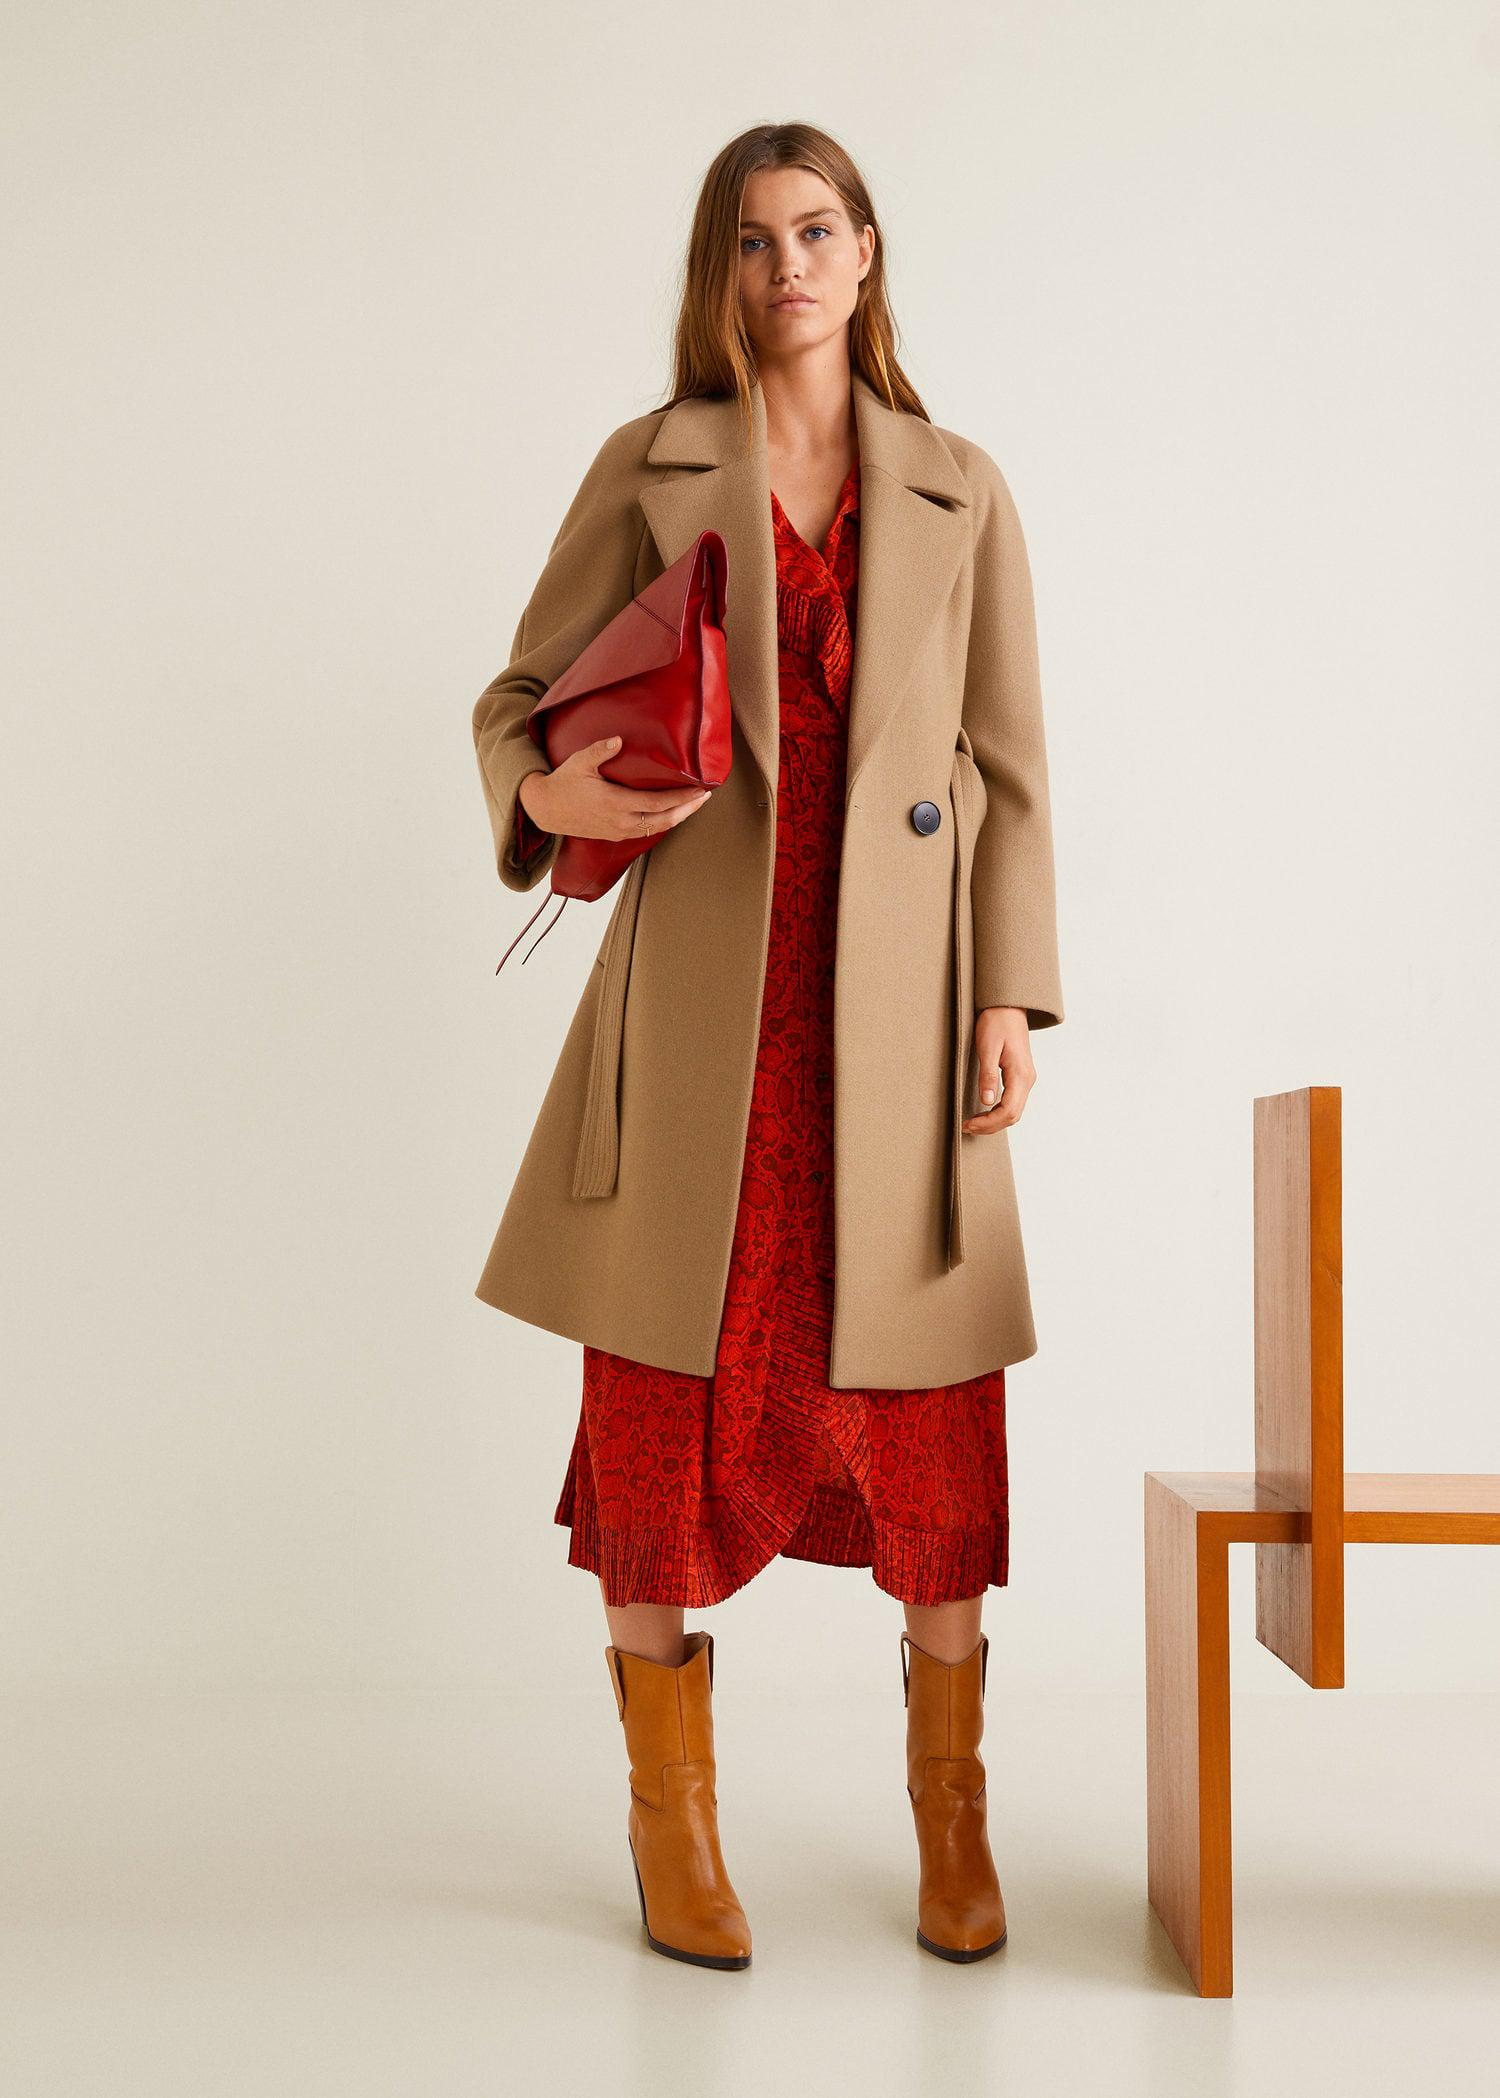 Lyst - Mango Structured Wool Coat in Brown 98d951cbd